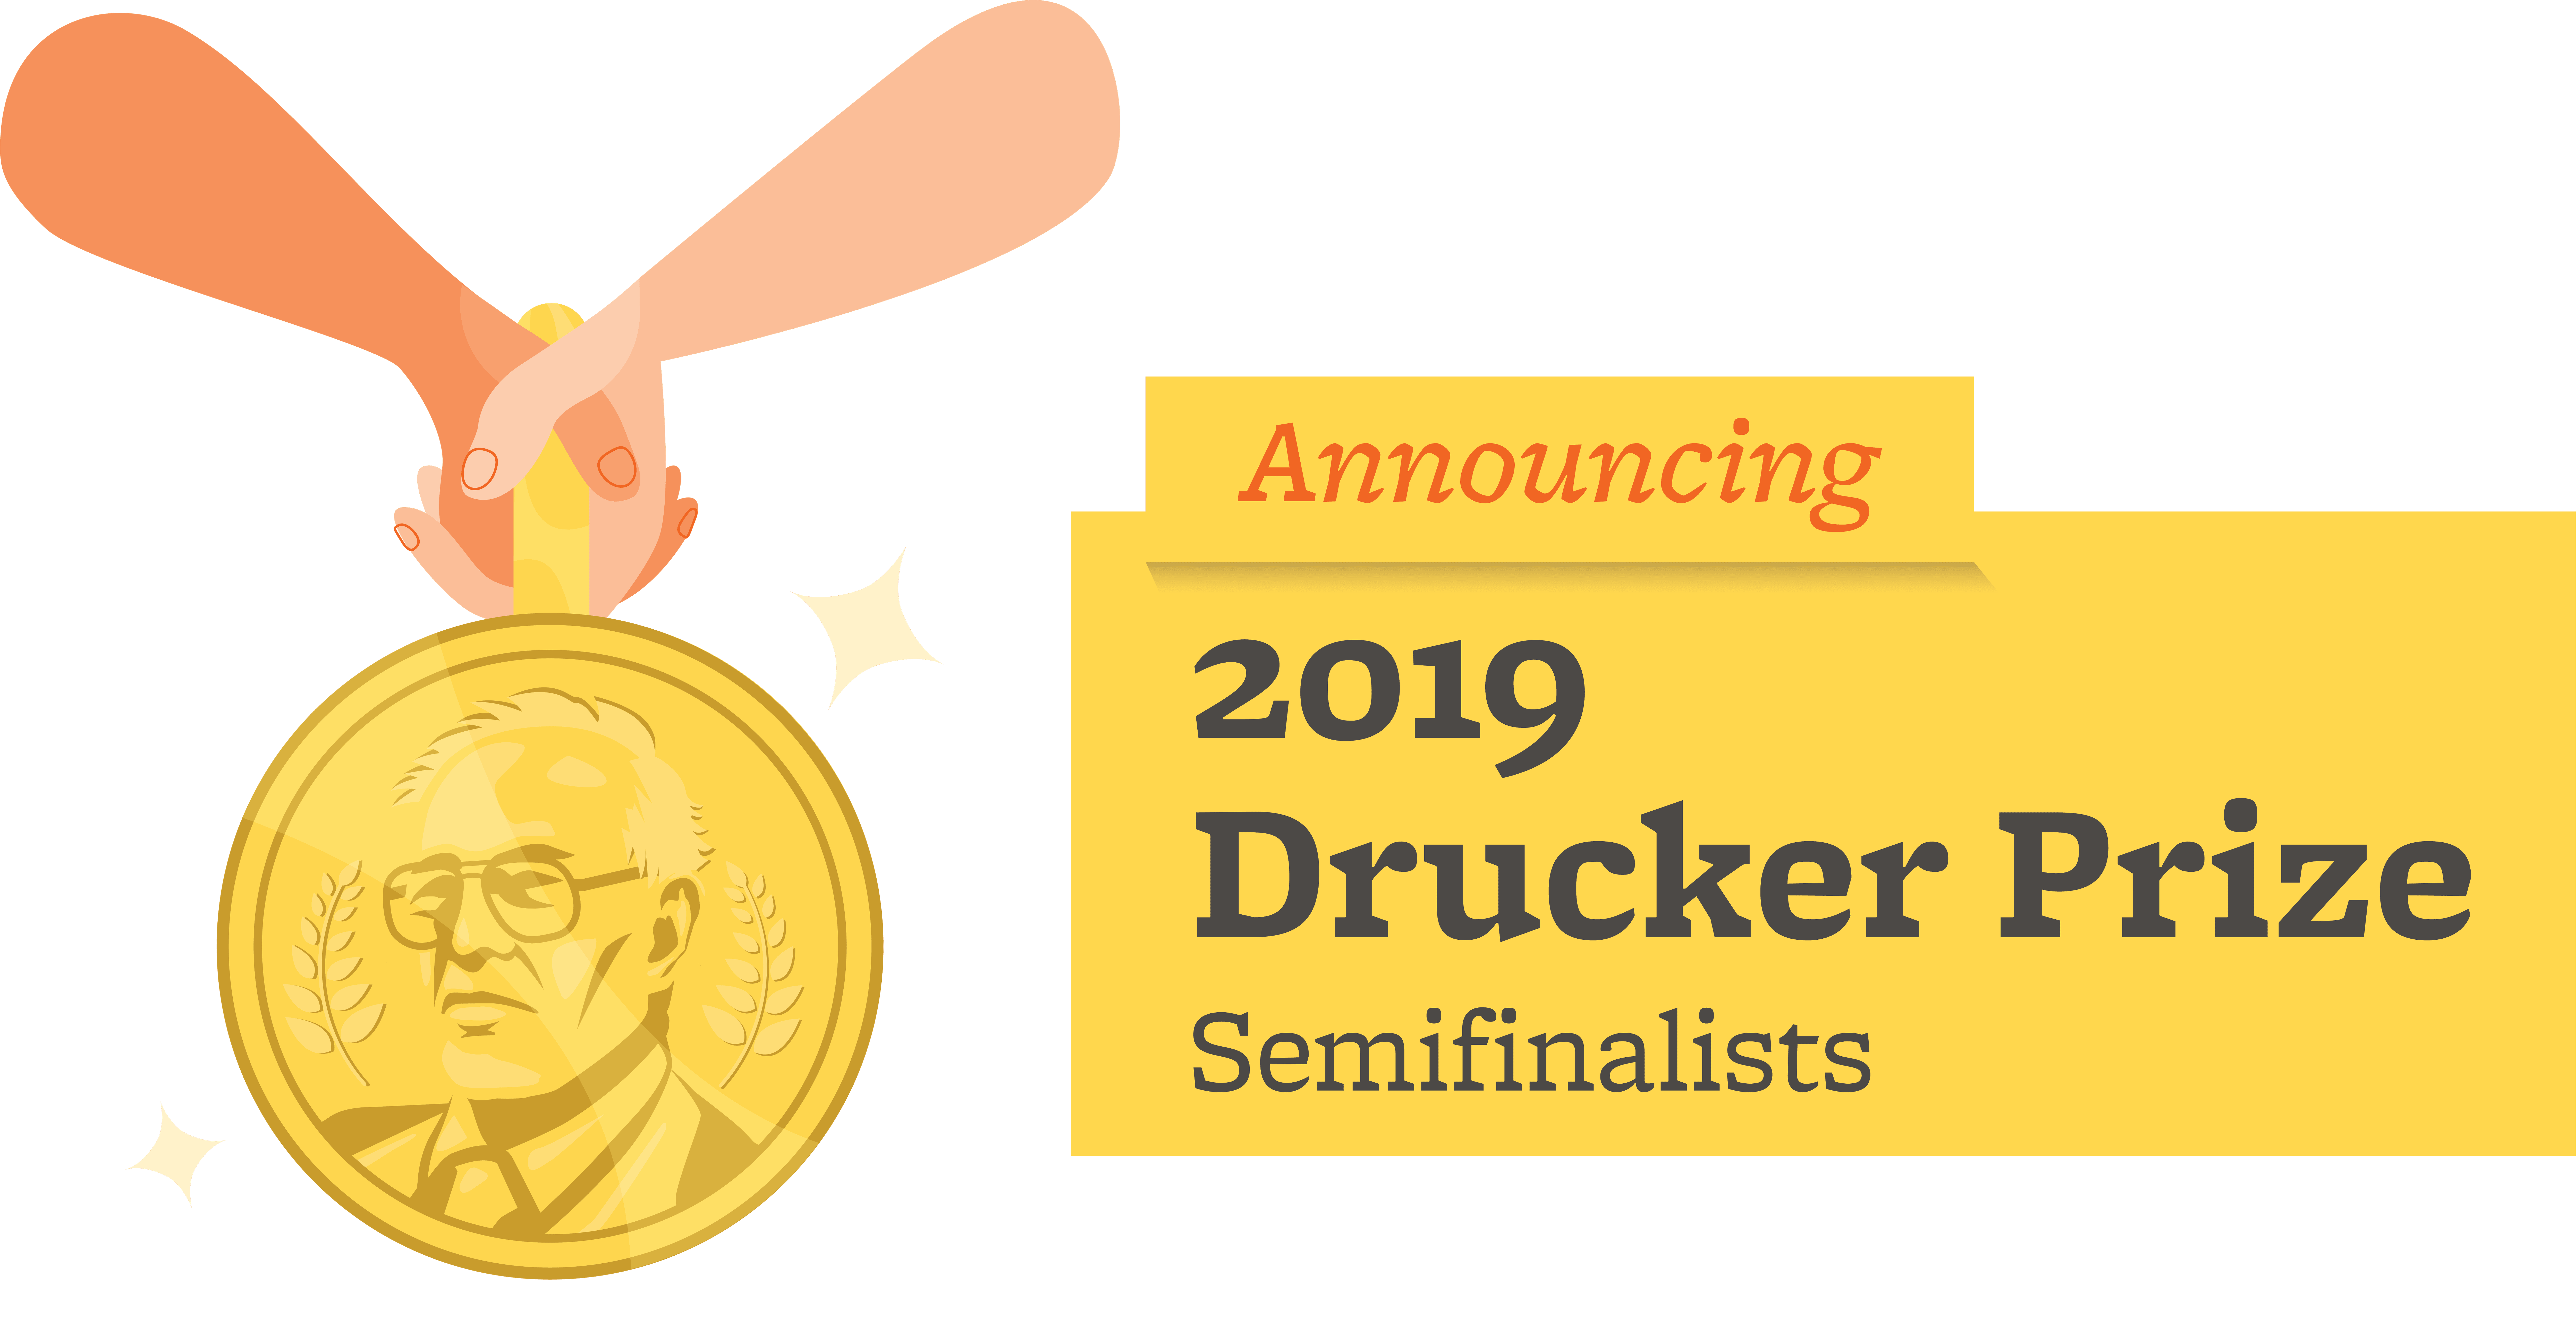 Announcing 2019 Drucker Prize Semifinalists